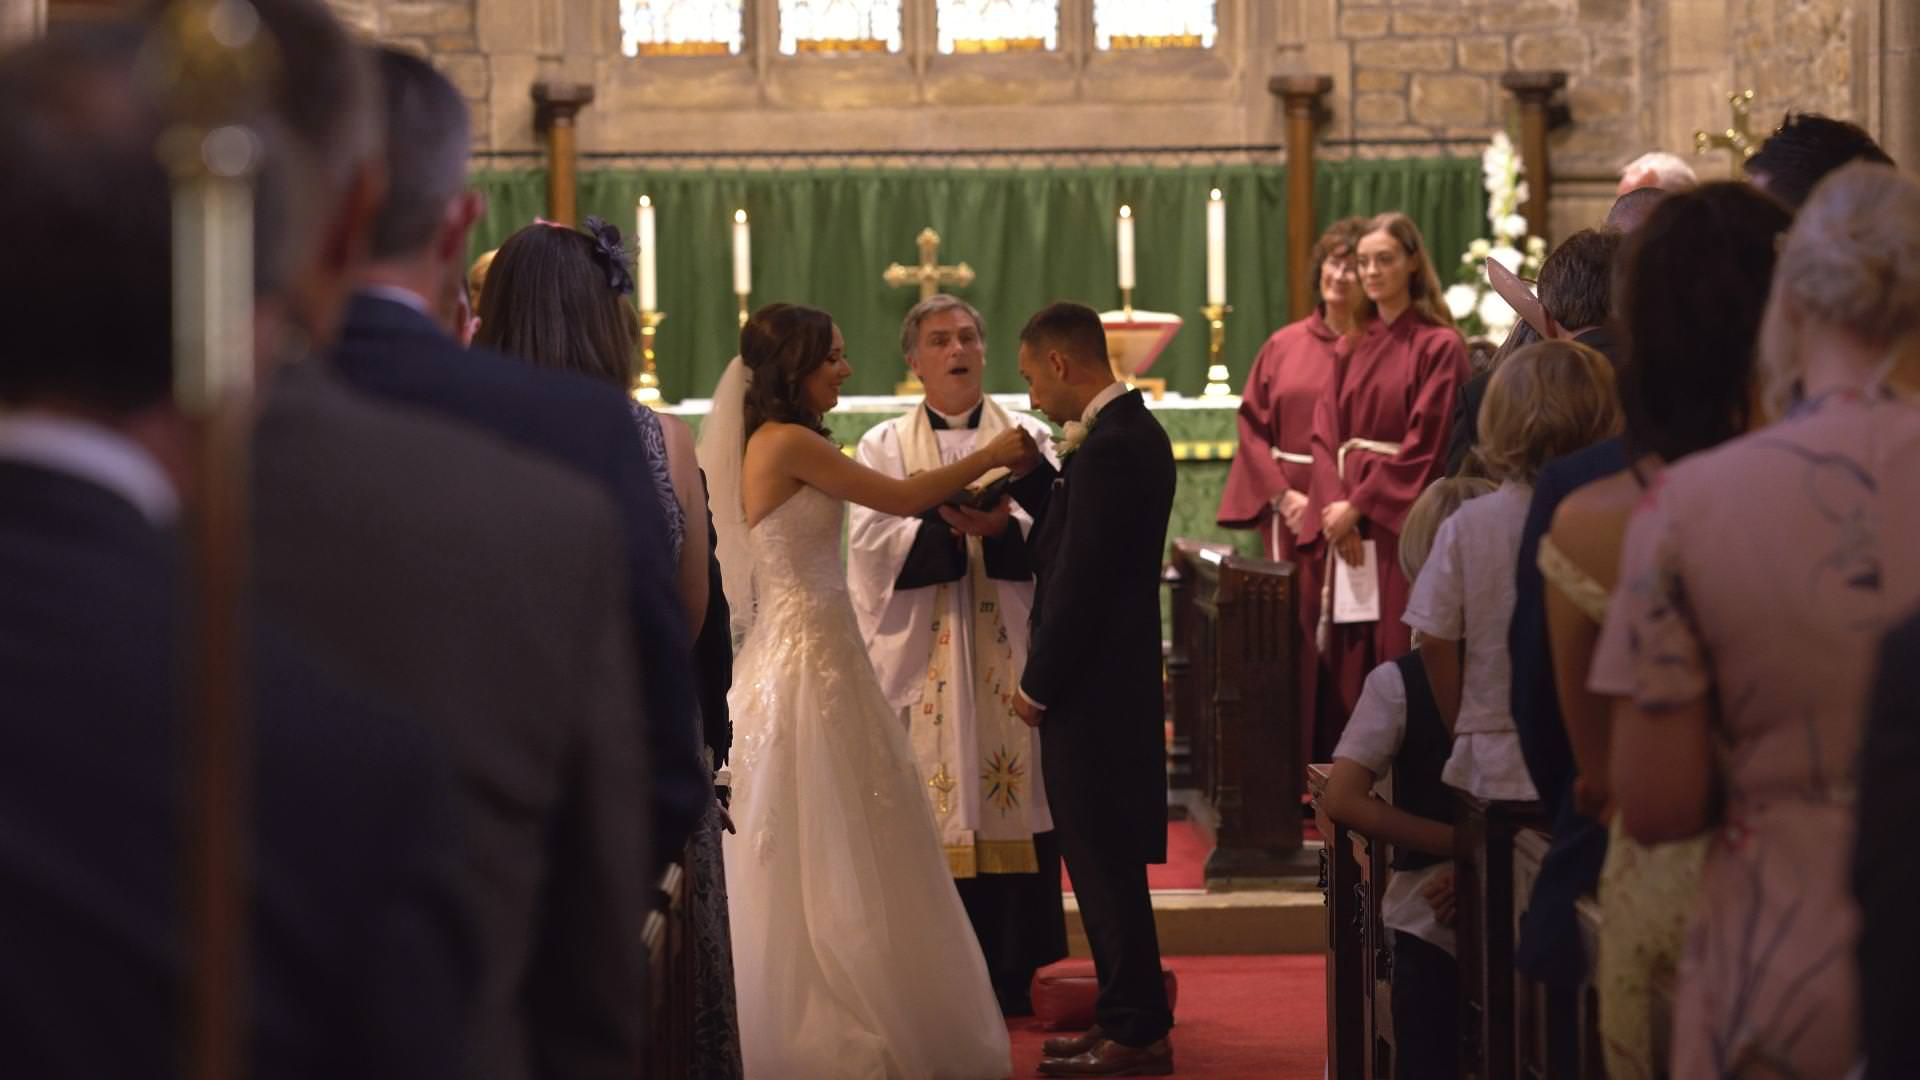 the groom coughs on to the brides hand during vows at St Bartholomews and St John's Church,